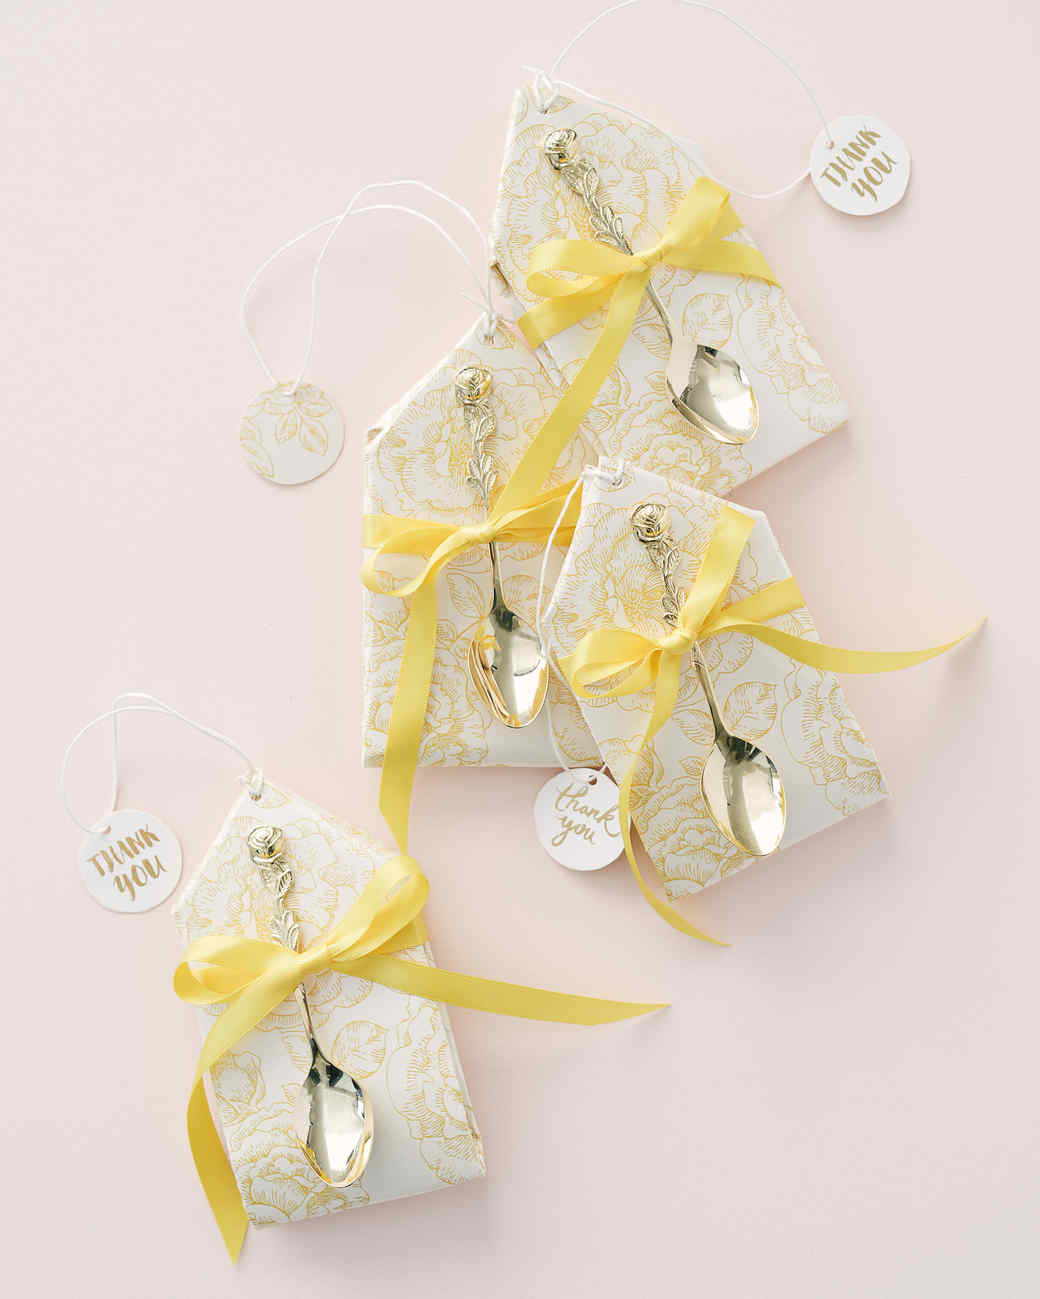 Tea-Bag Envelope Party Favors | Martha Stewart